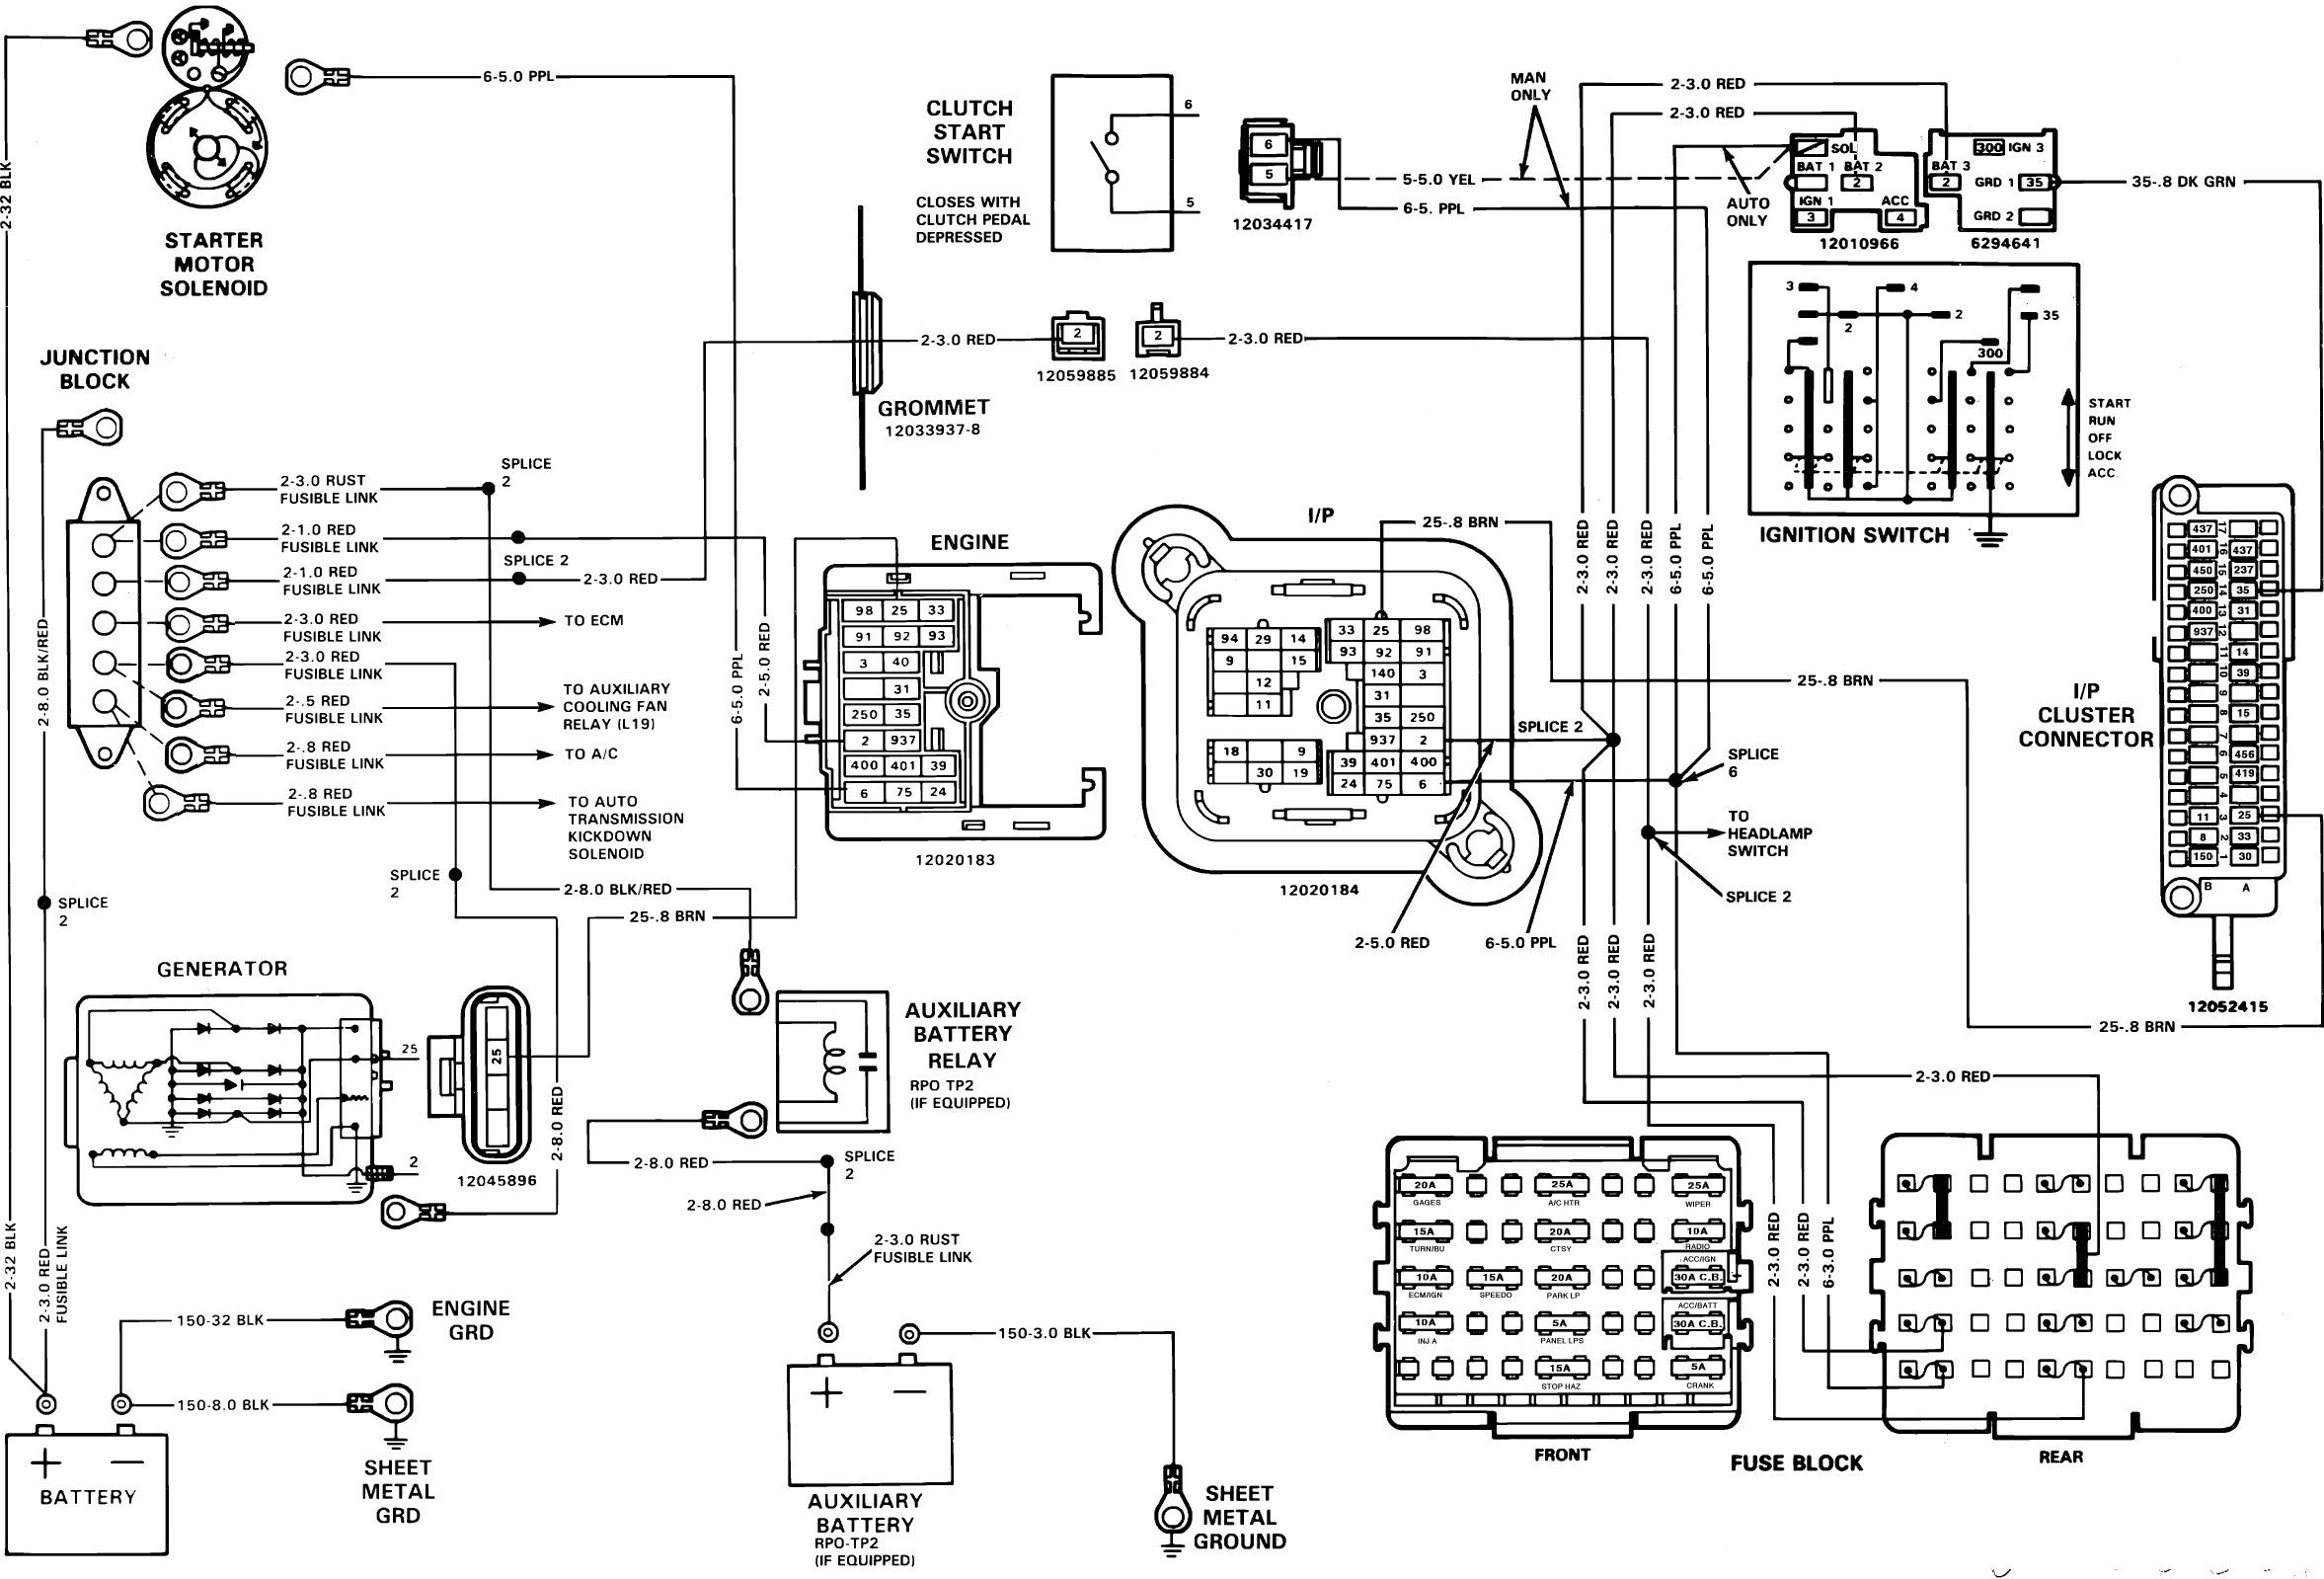 [WRG-3209] 1989 Gmc Headlight Wiring Diagrams